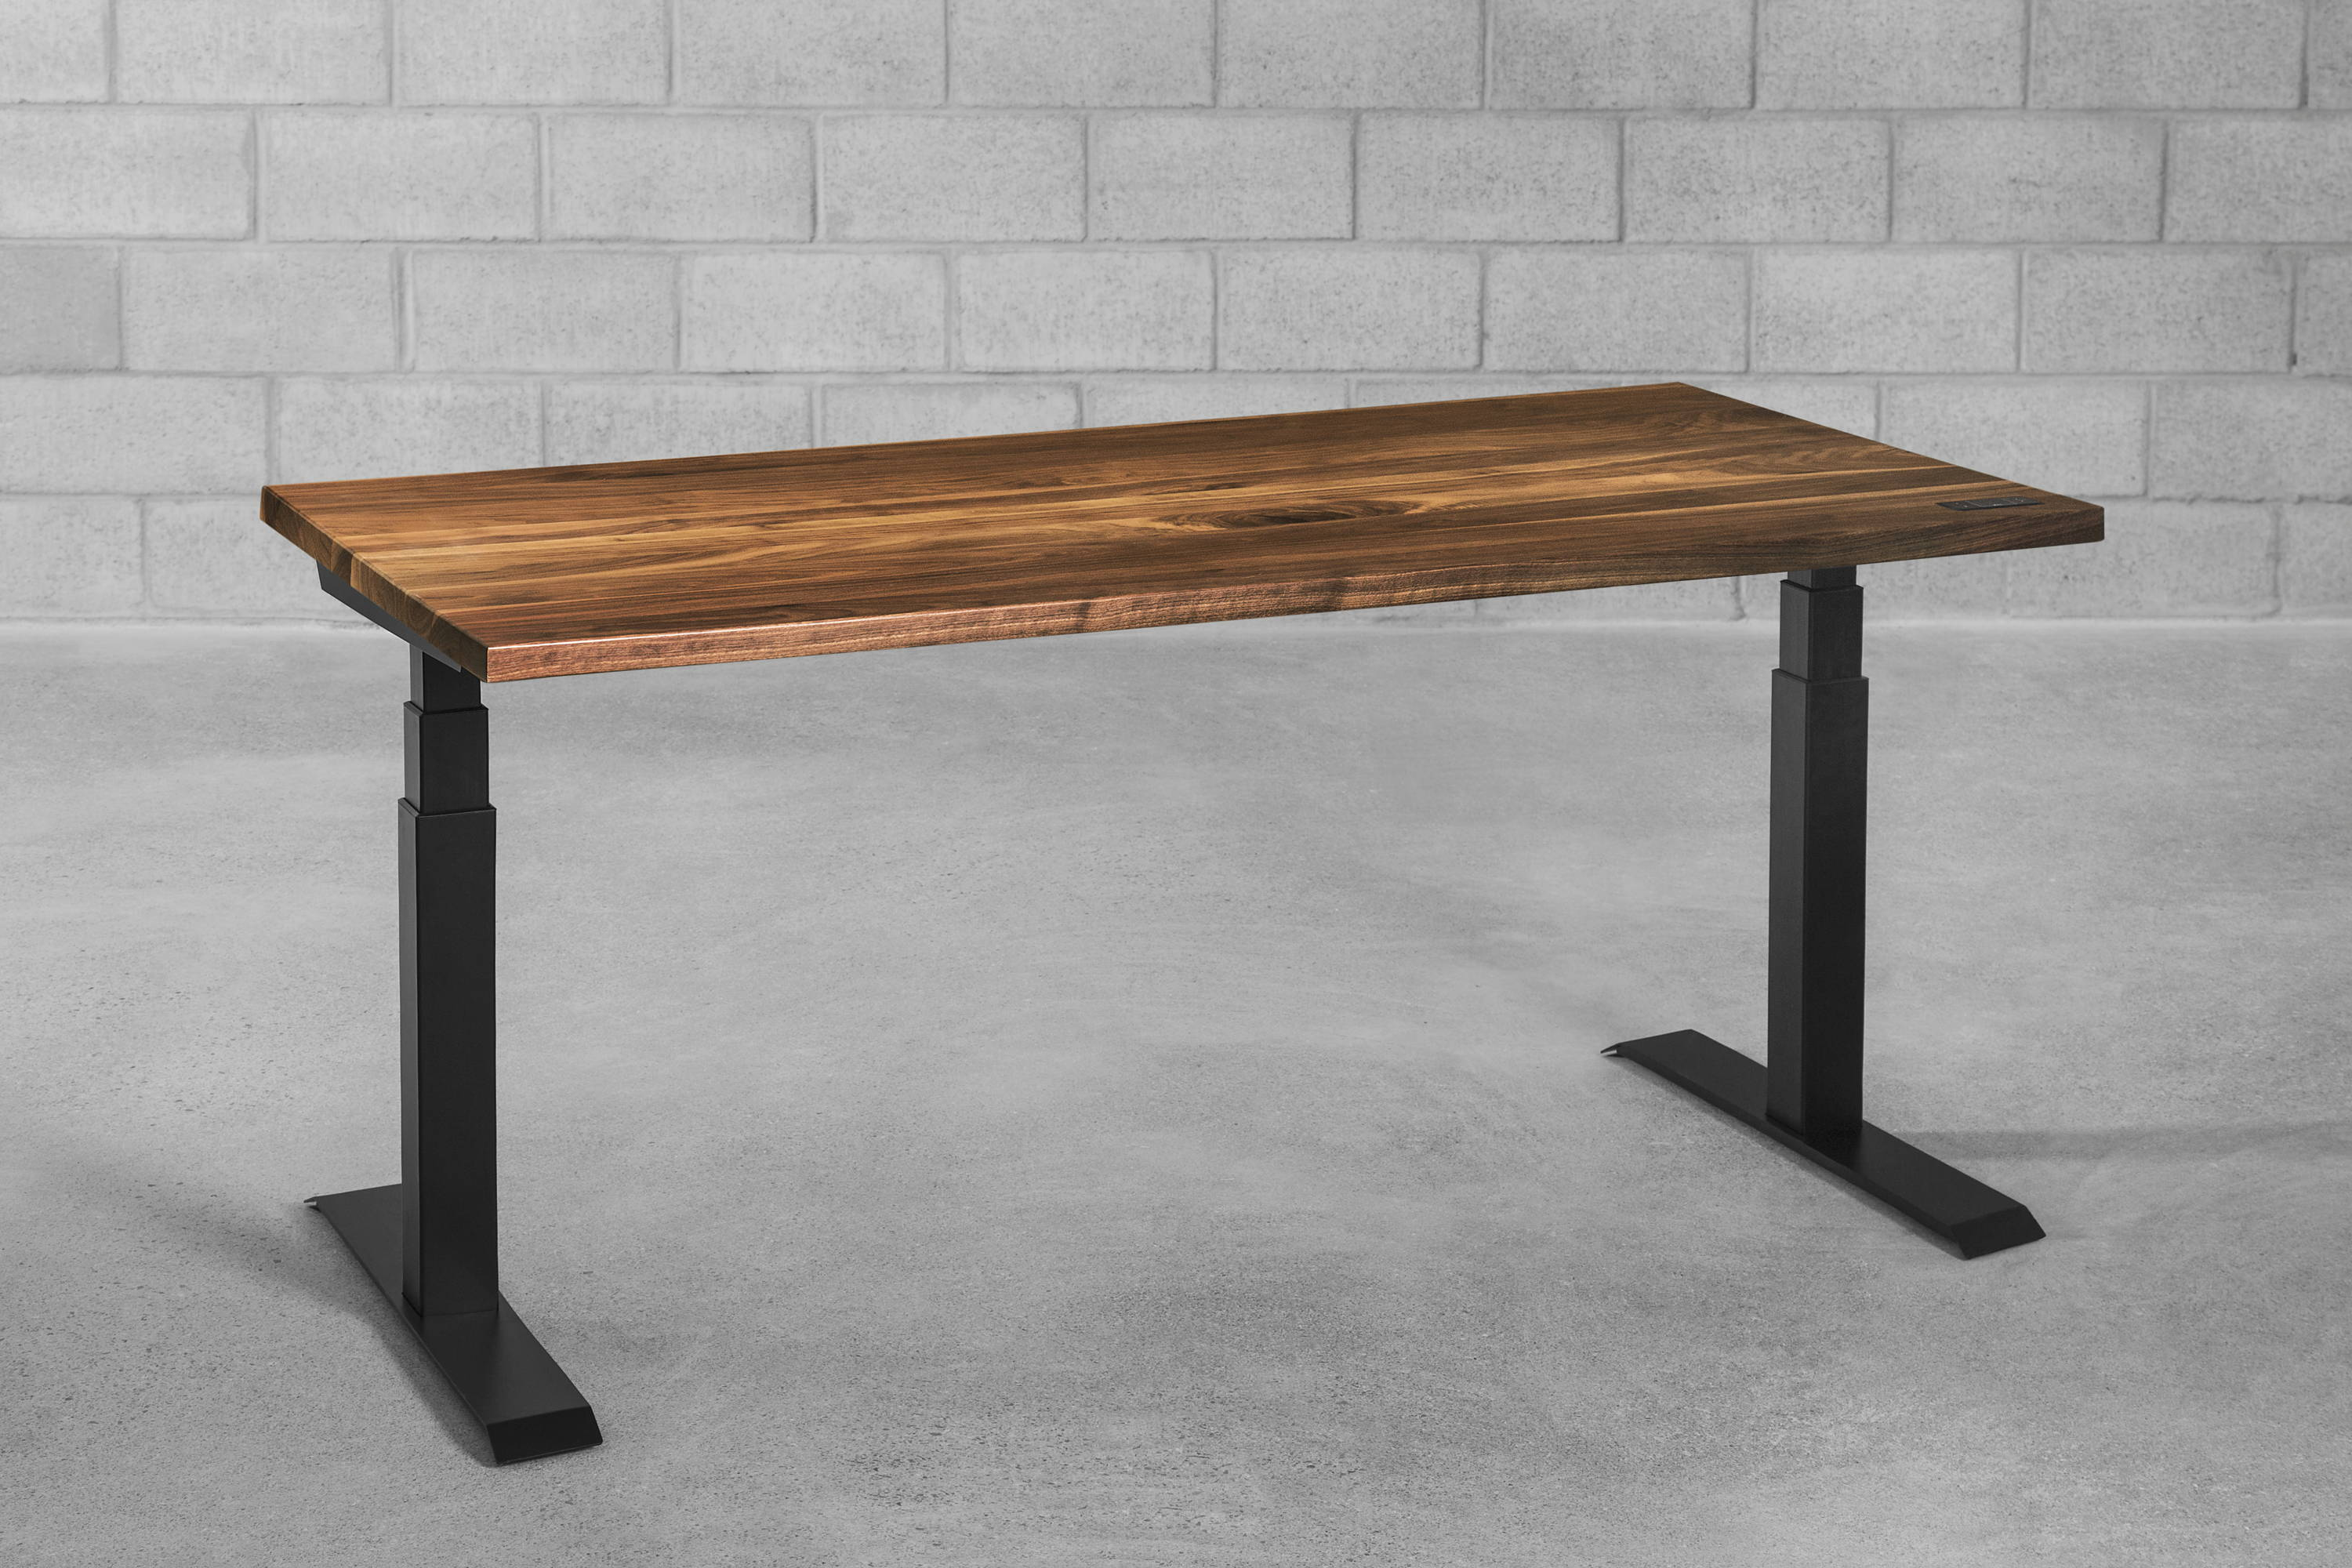 Sway walnut - sit-stand desk - ergonofis